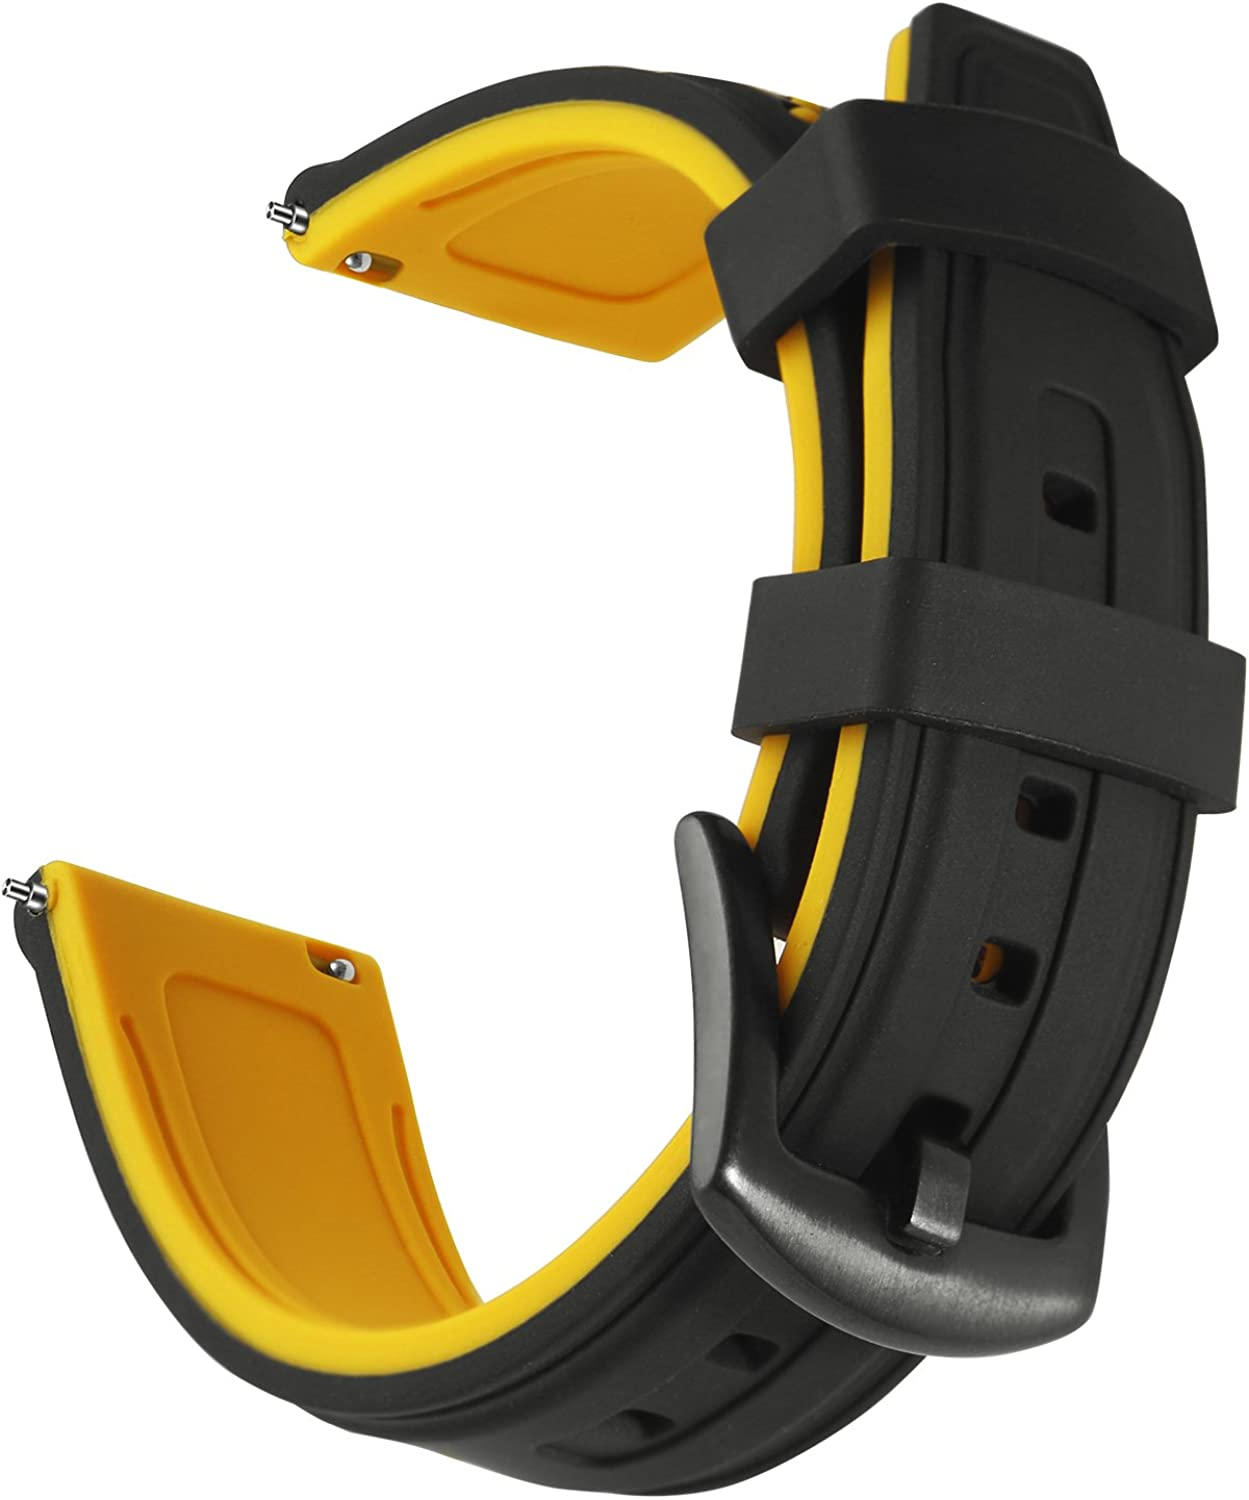 OLLREAR Silicone Watch Strap 55% OFF Replacement -6 Band Co Rapid rise Rubber